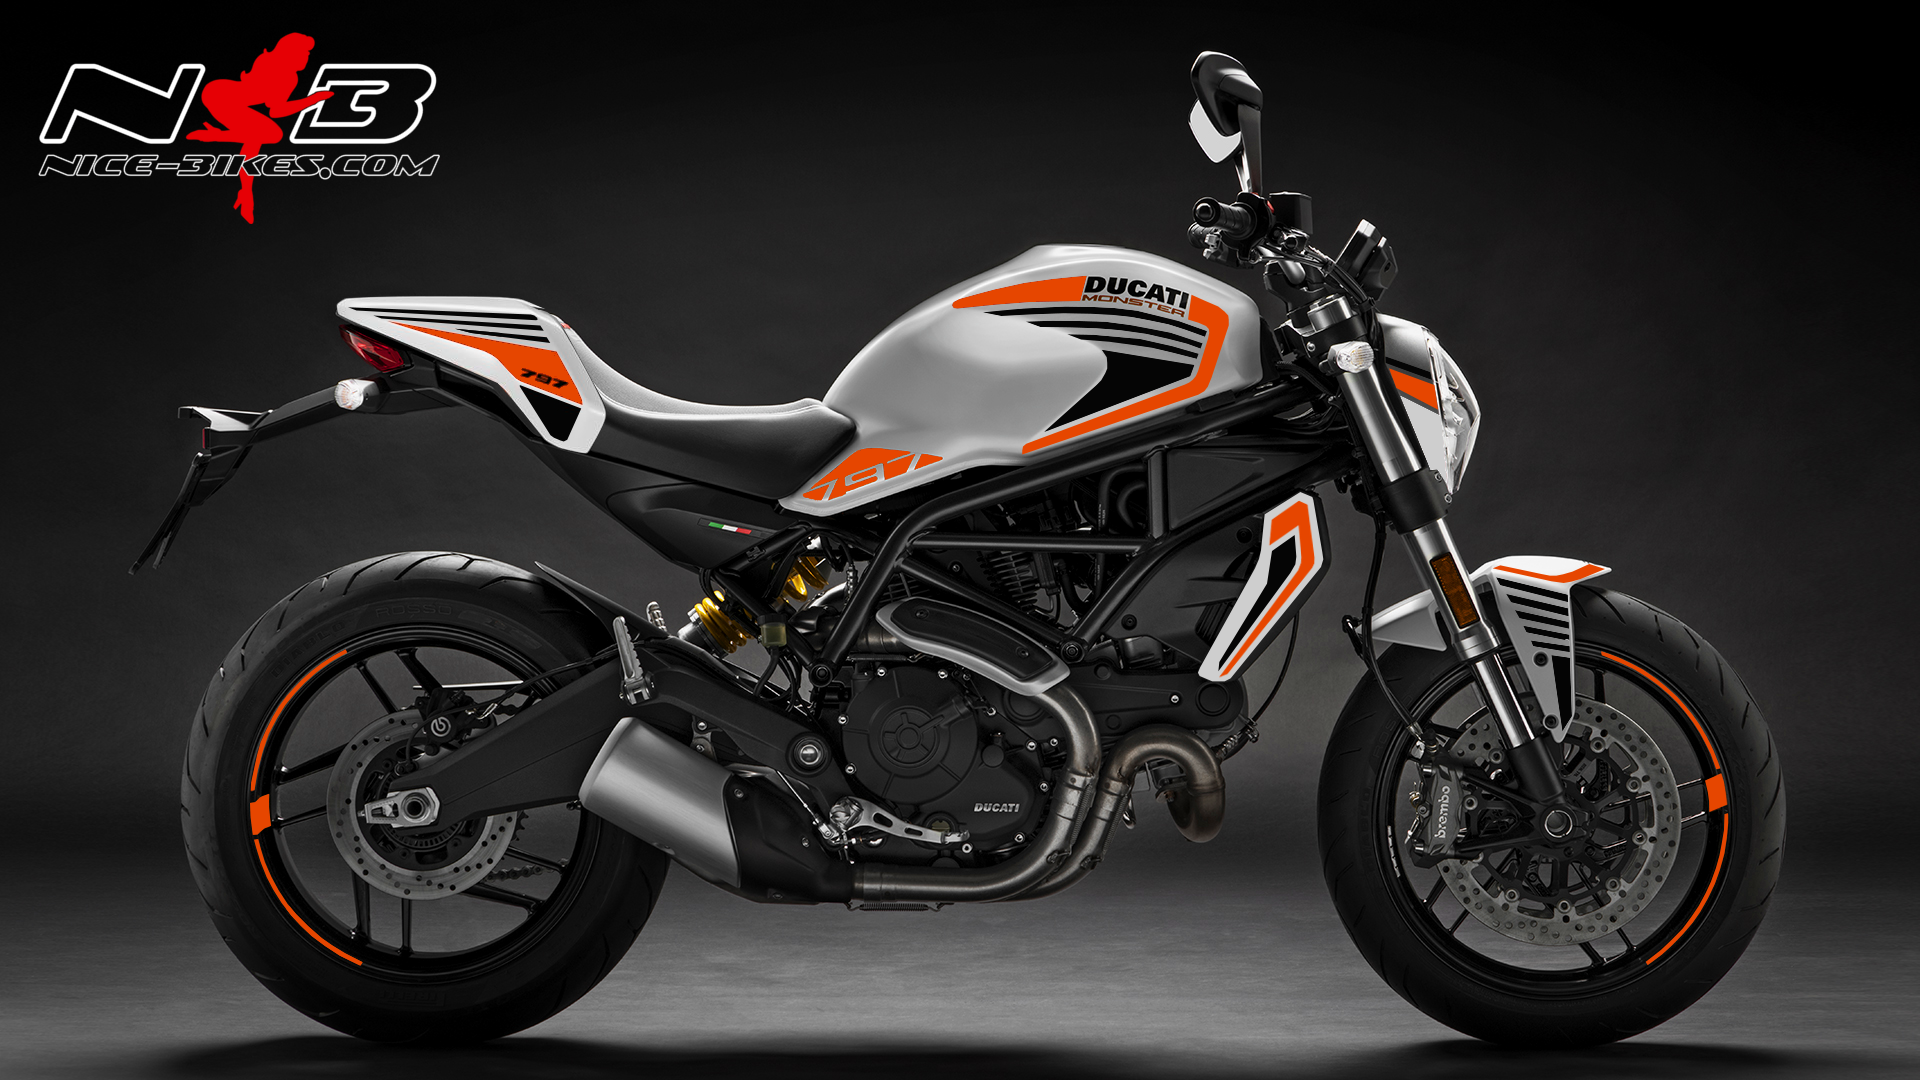 Foliendesign DUCATI  Monster 797 Bj. 2020 Evil Orange